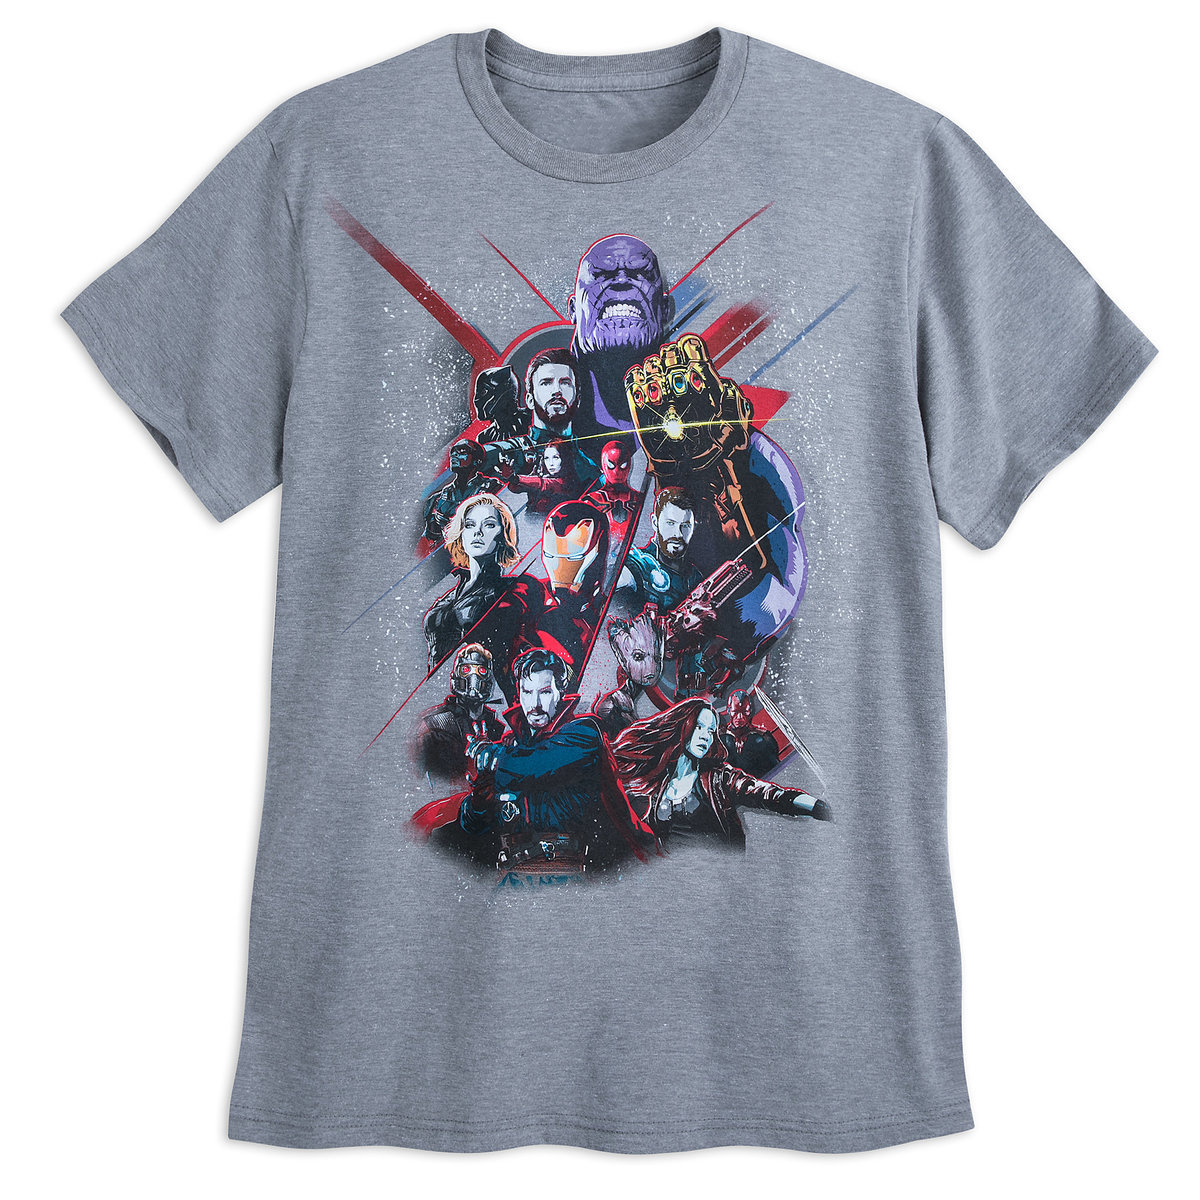 7dff2f6415118 Product Image of Marvel s Avengers  Infinity War T-Shirt for Men - Gray